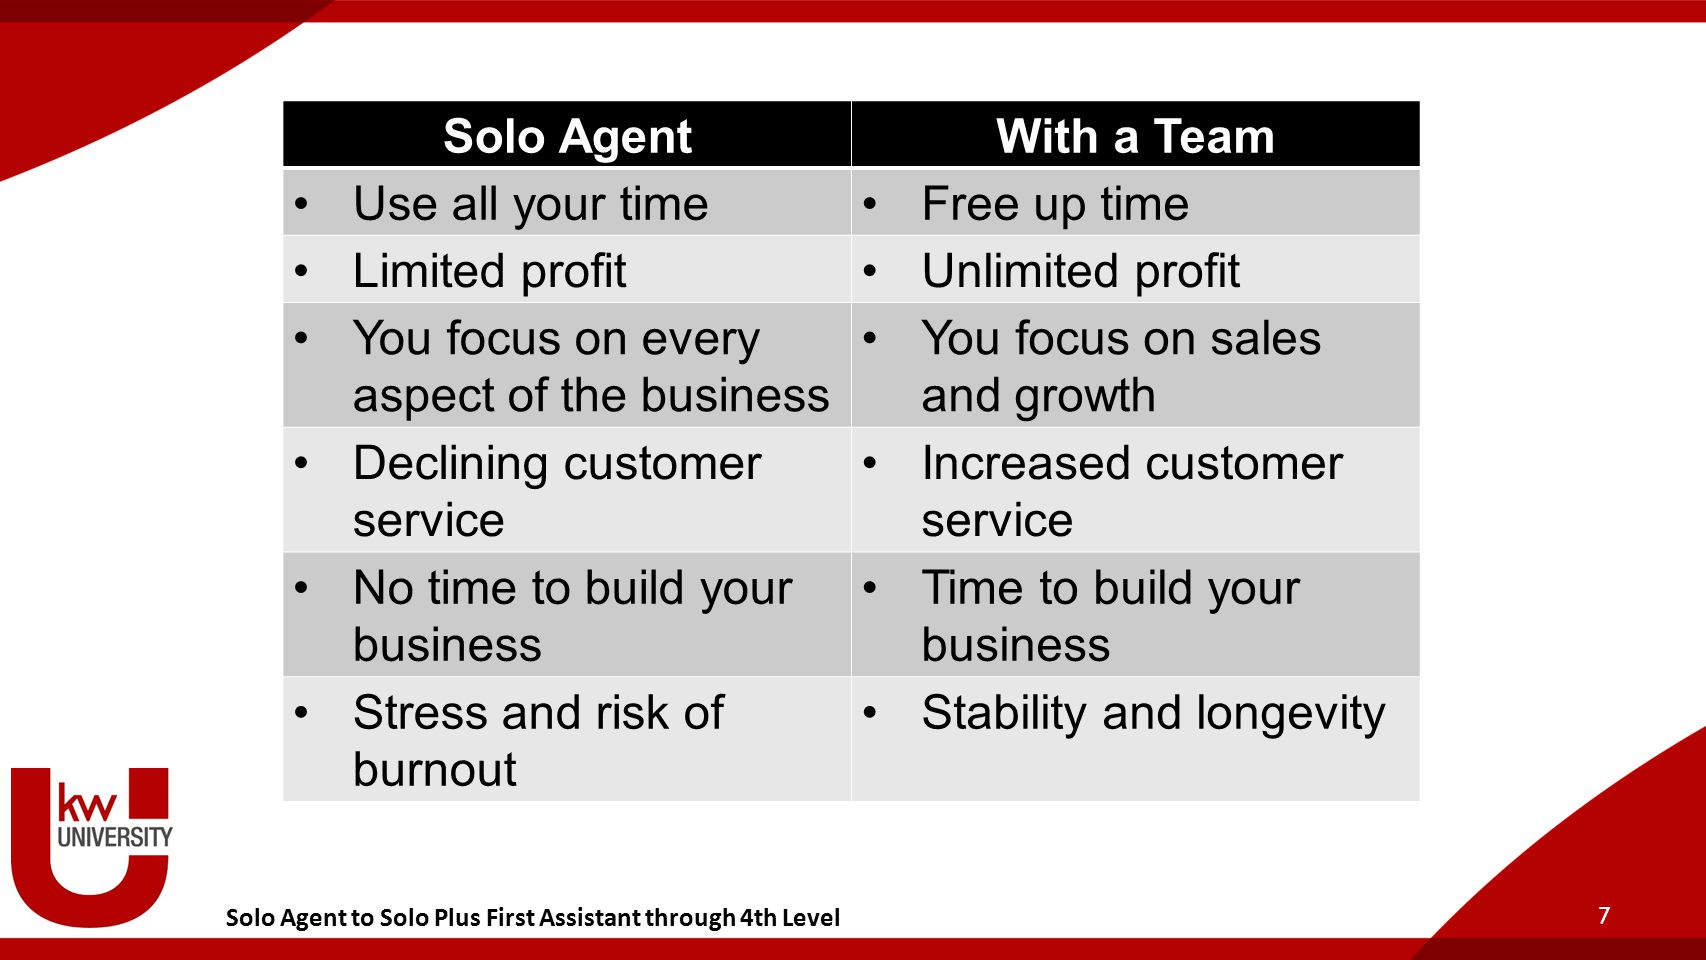 Solo Agent to Solo Plus First Assistant through 4th Level 7 Solo AgentWith a Team Use all your timeFree up time Limited profitUnlimited profit You focus on every aspect of the business You focus on sales and growth Declining customer service Increased customer service No time to build your business Time to build your business Stress and risk of burnout Stability and longevity